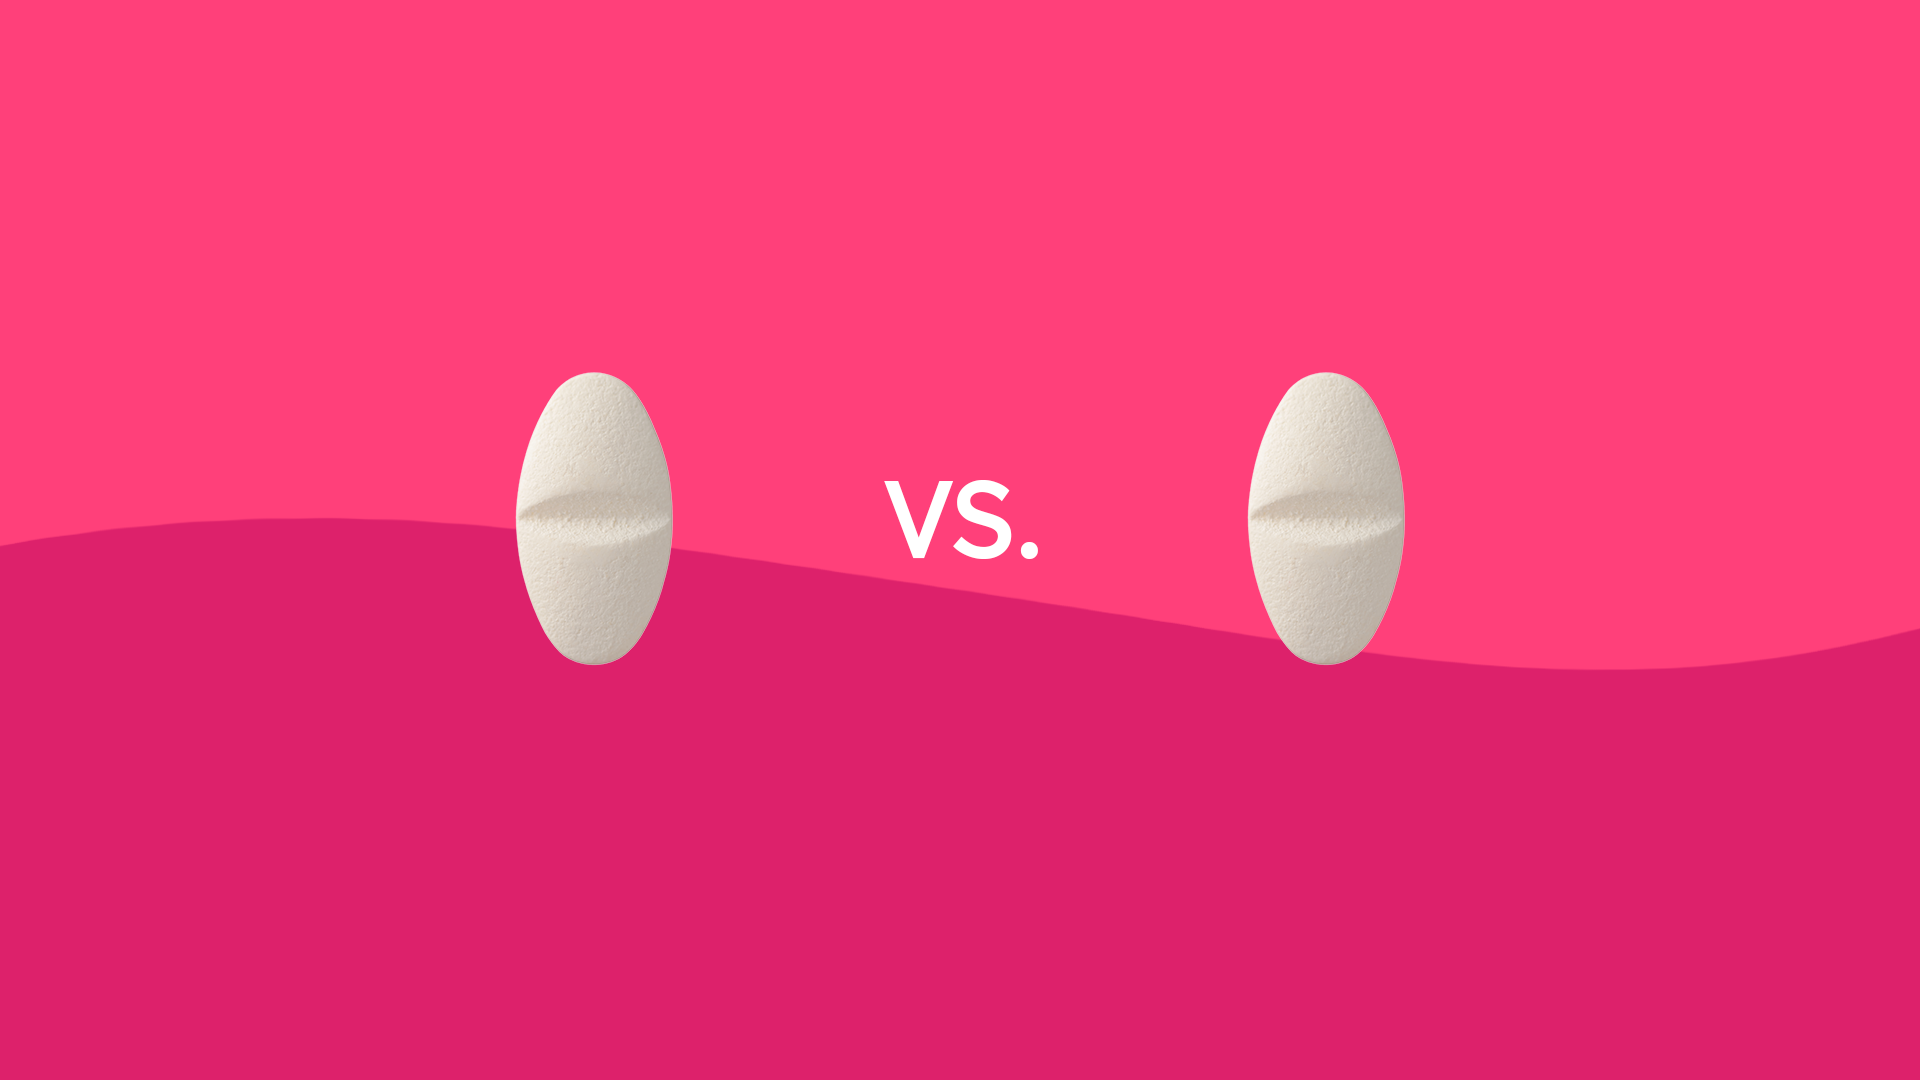 Vistaril vs. Xanax: Differences, similarities, and which is better for you